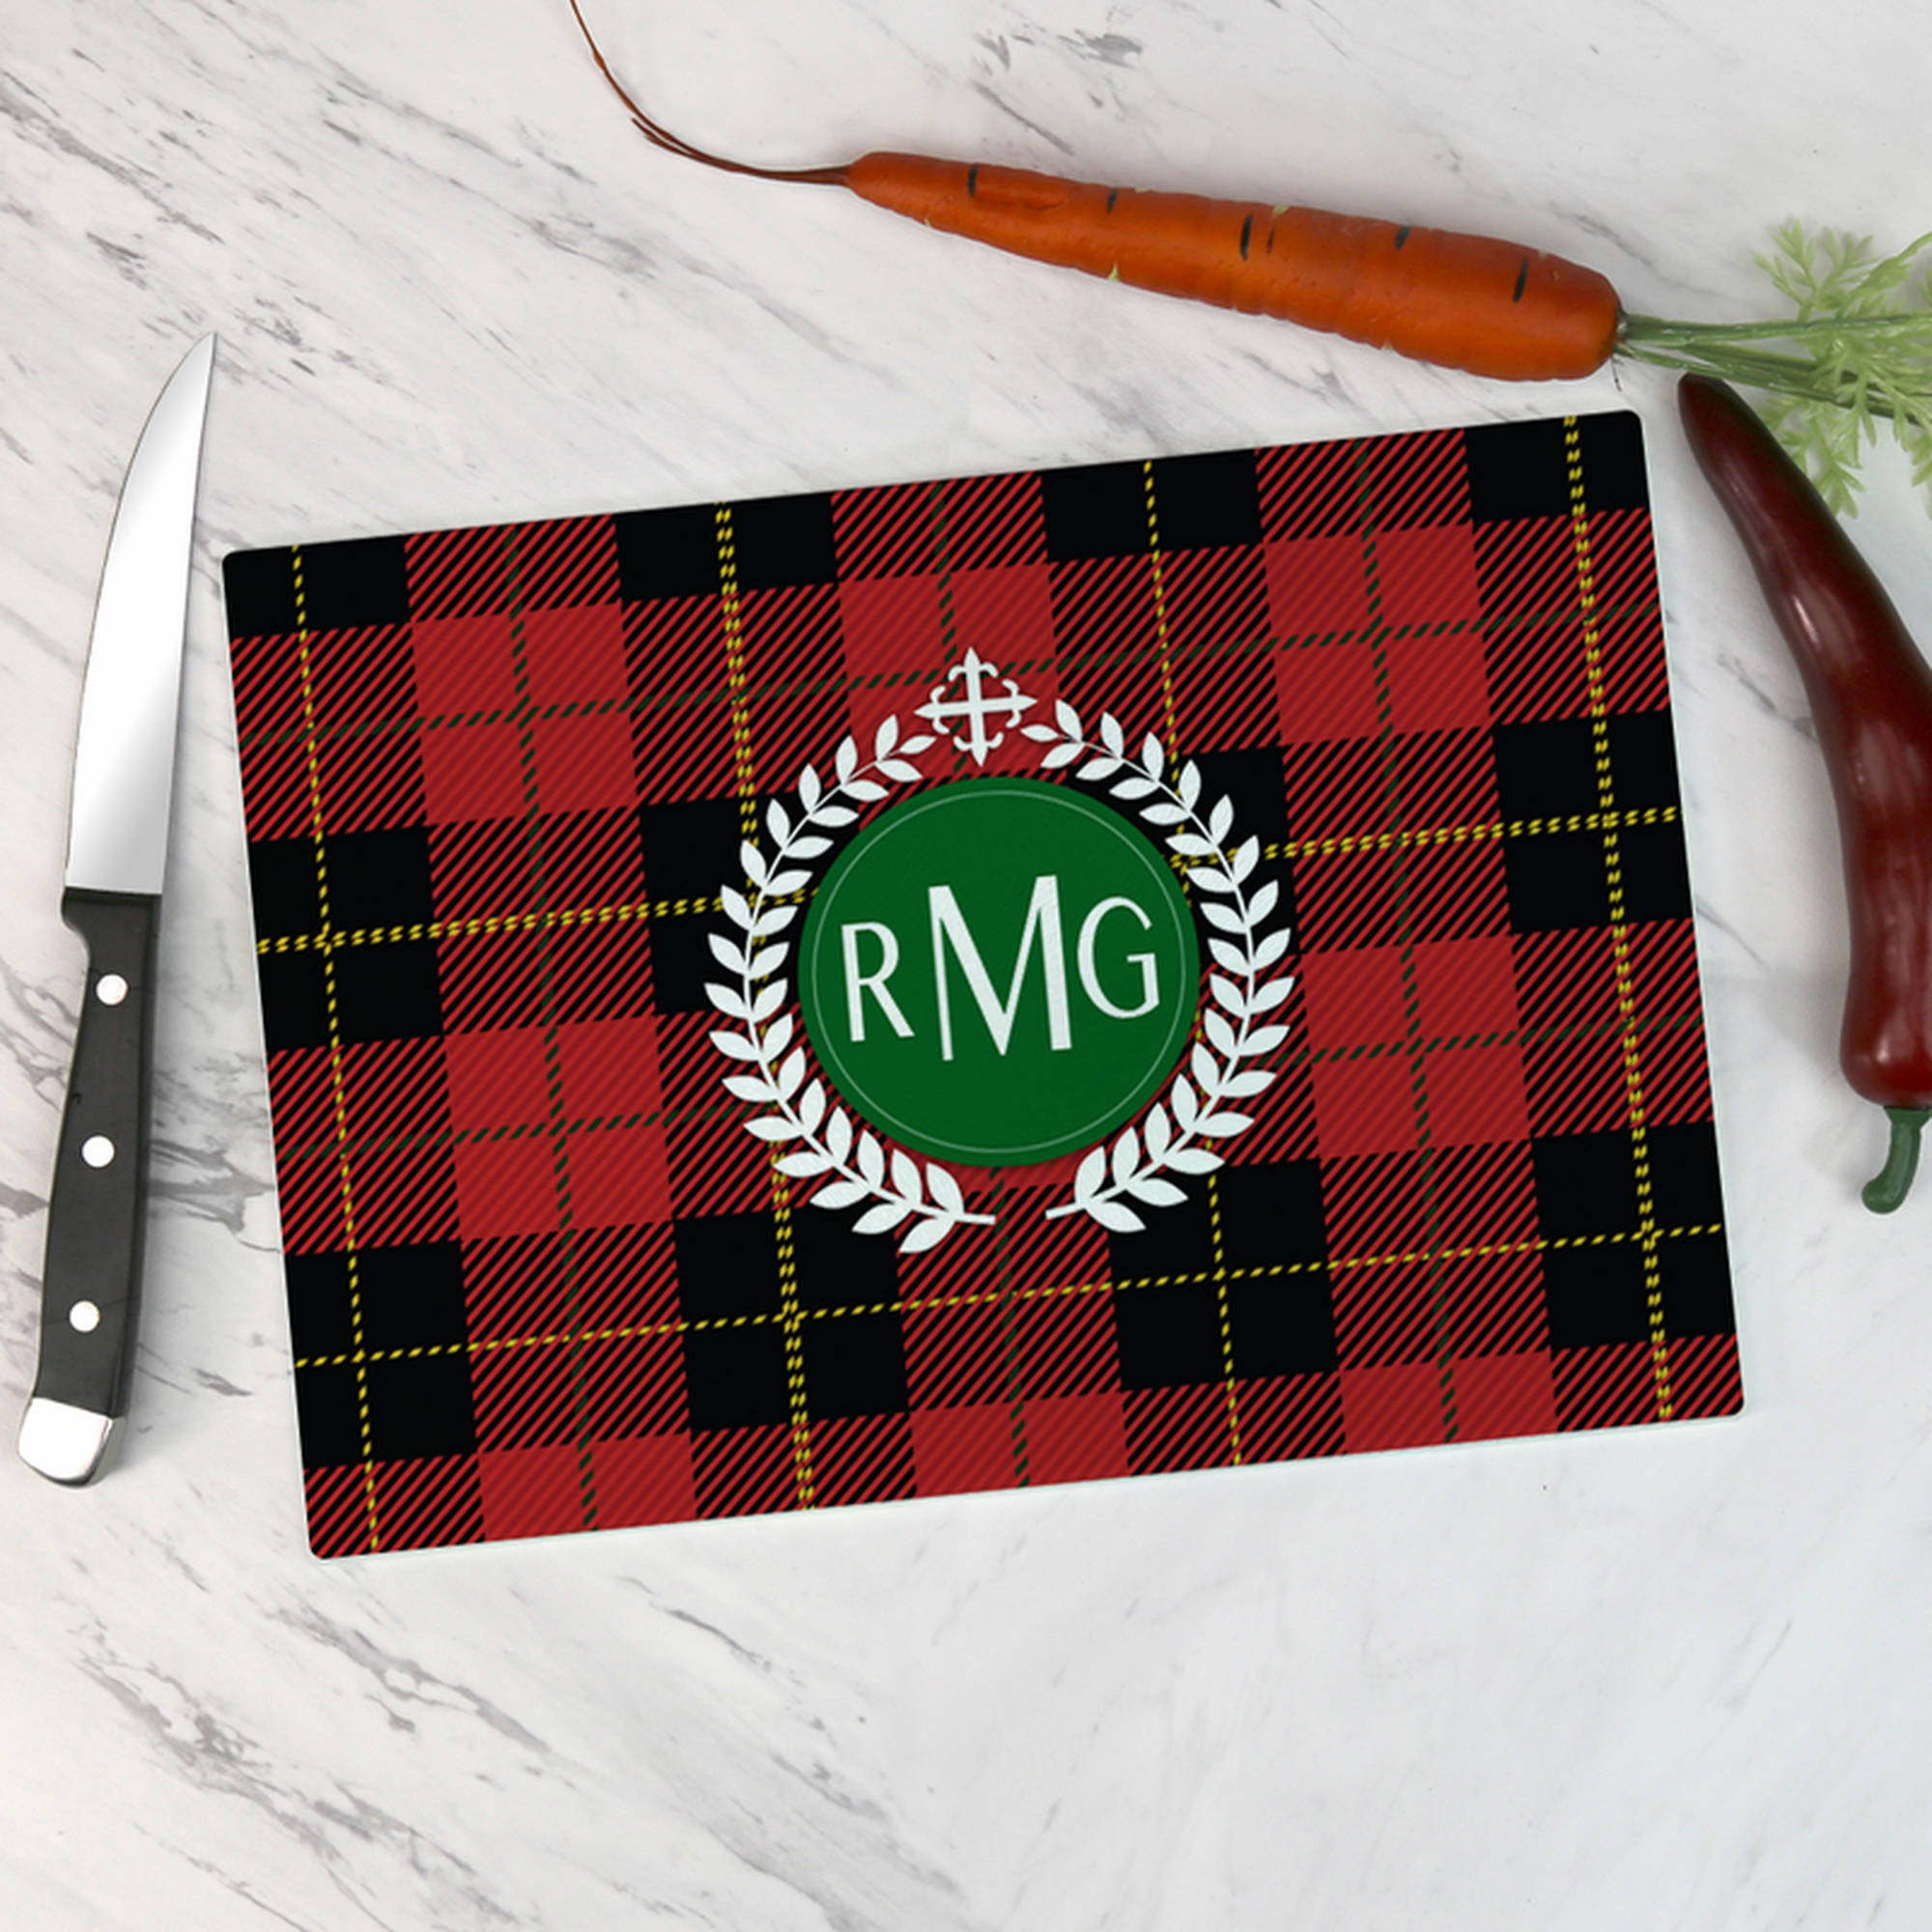 Personalized Monogram Glass Cutting Board 12.5x17.8125inches